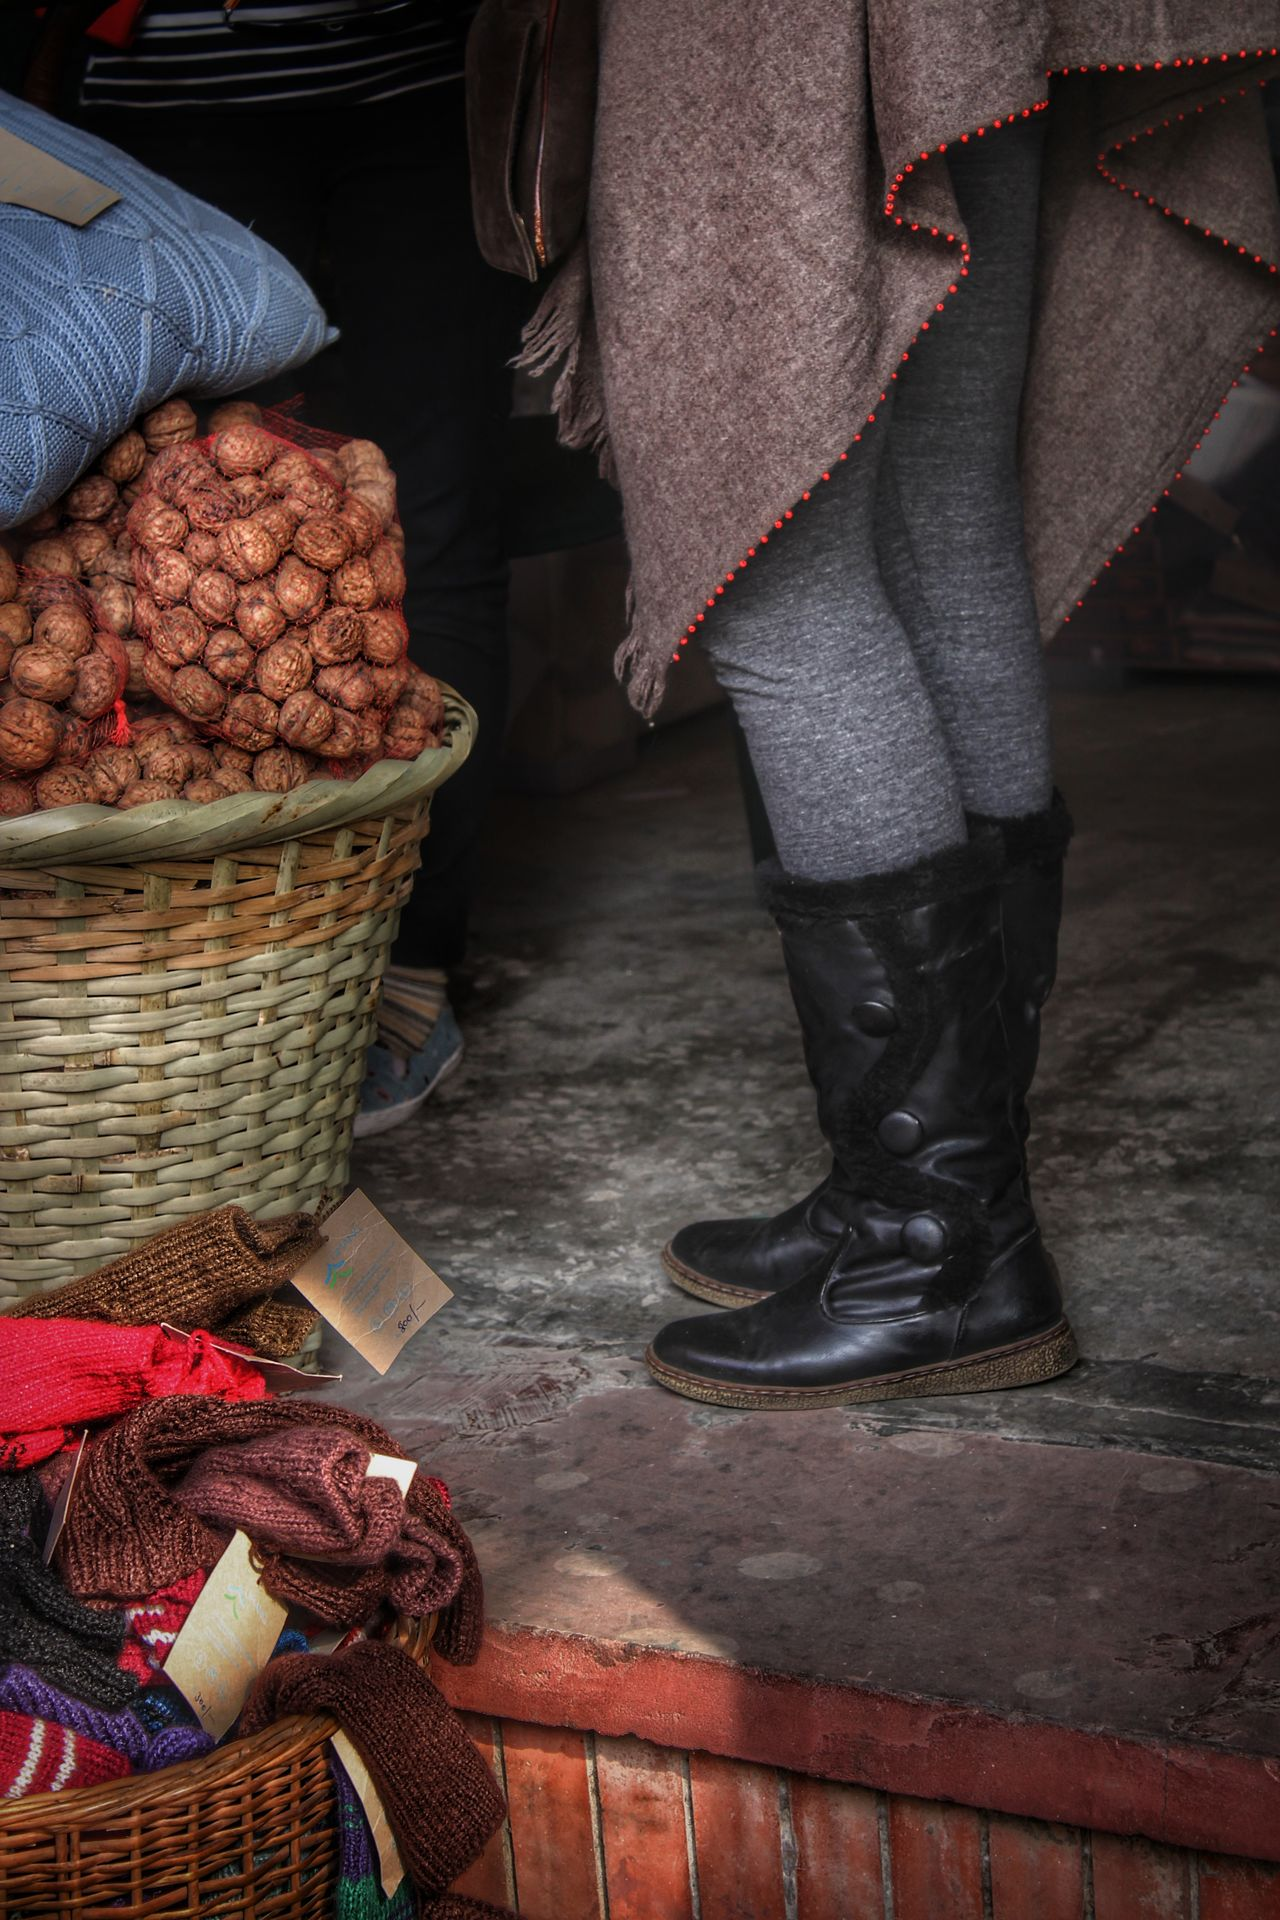 Real People Low Section Standing One Woman Only Natural Light Eye4photography  Street Photography Street Fashion Walnuts People Photography EyeEm Best Shots Legs_only Boots Winter Fashion Bazaar Uniqueness